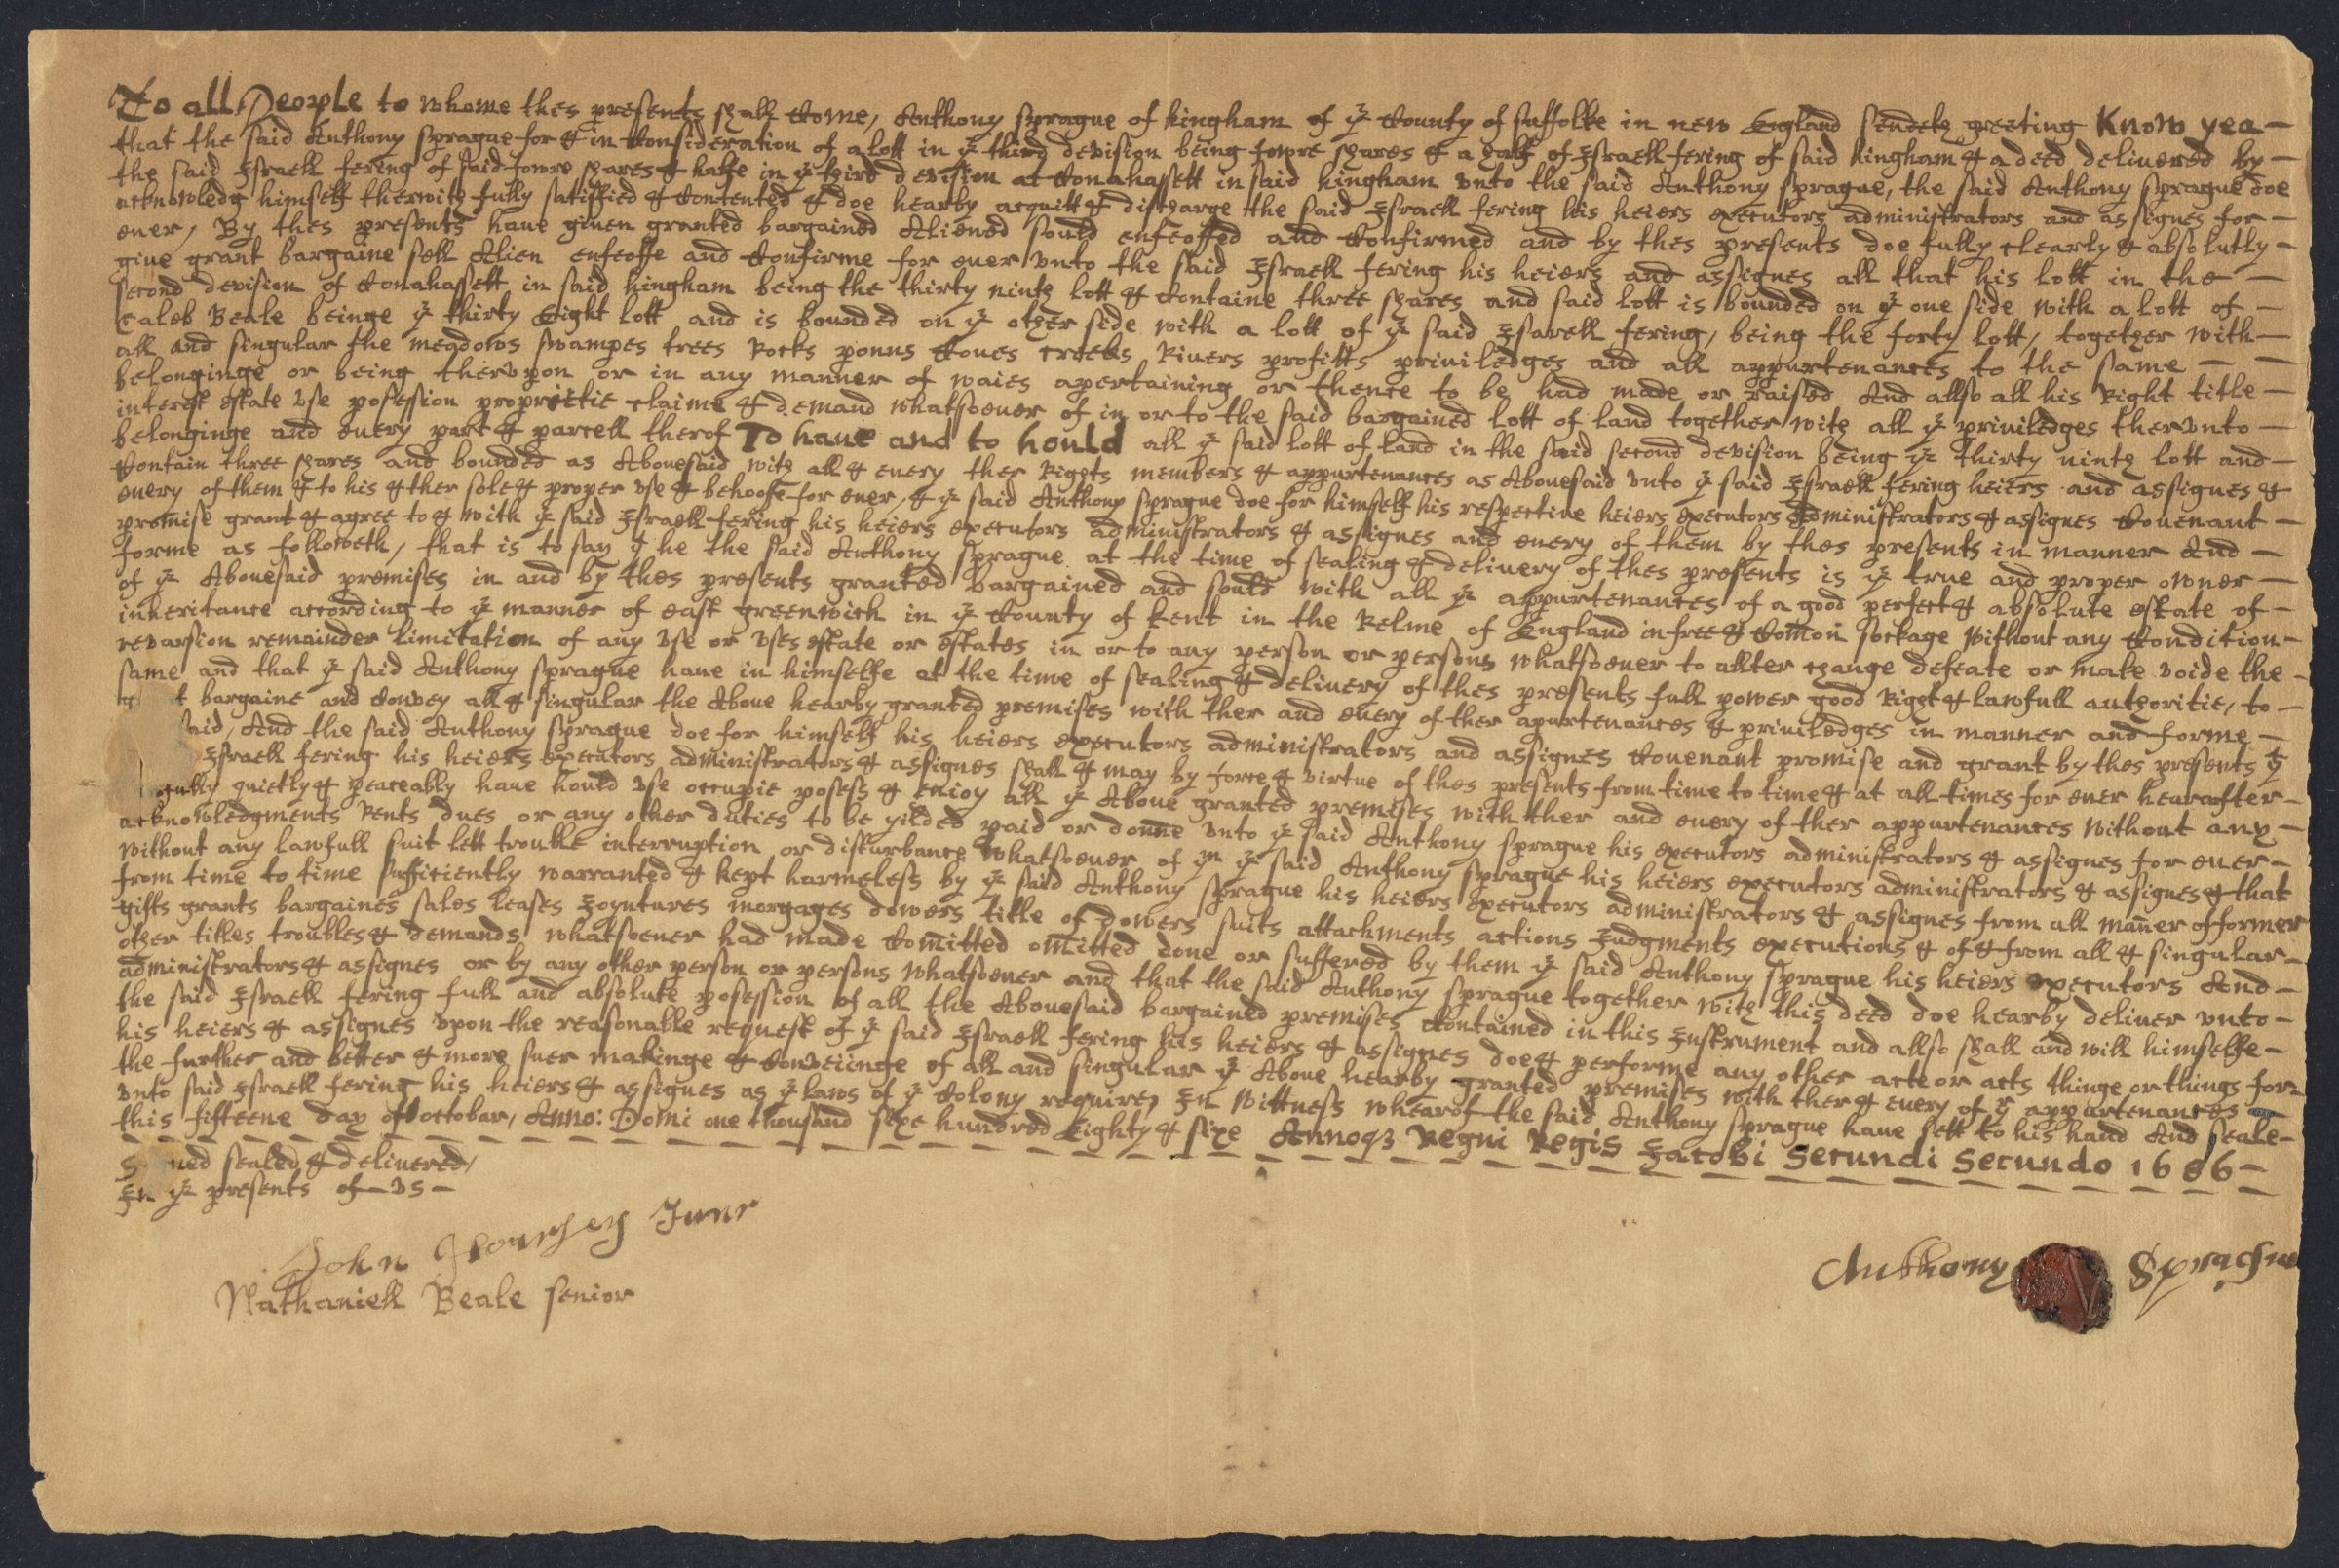 Deed of sale of property, Hingham, Massachusetts, 1686